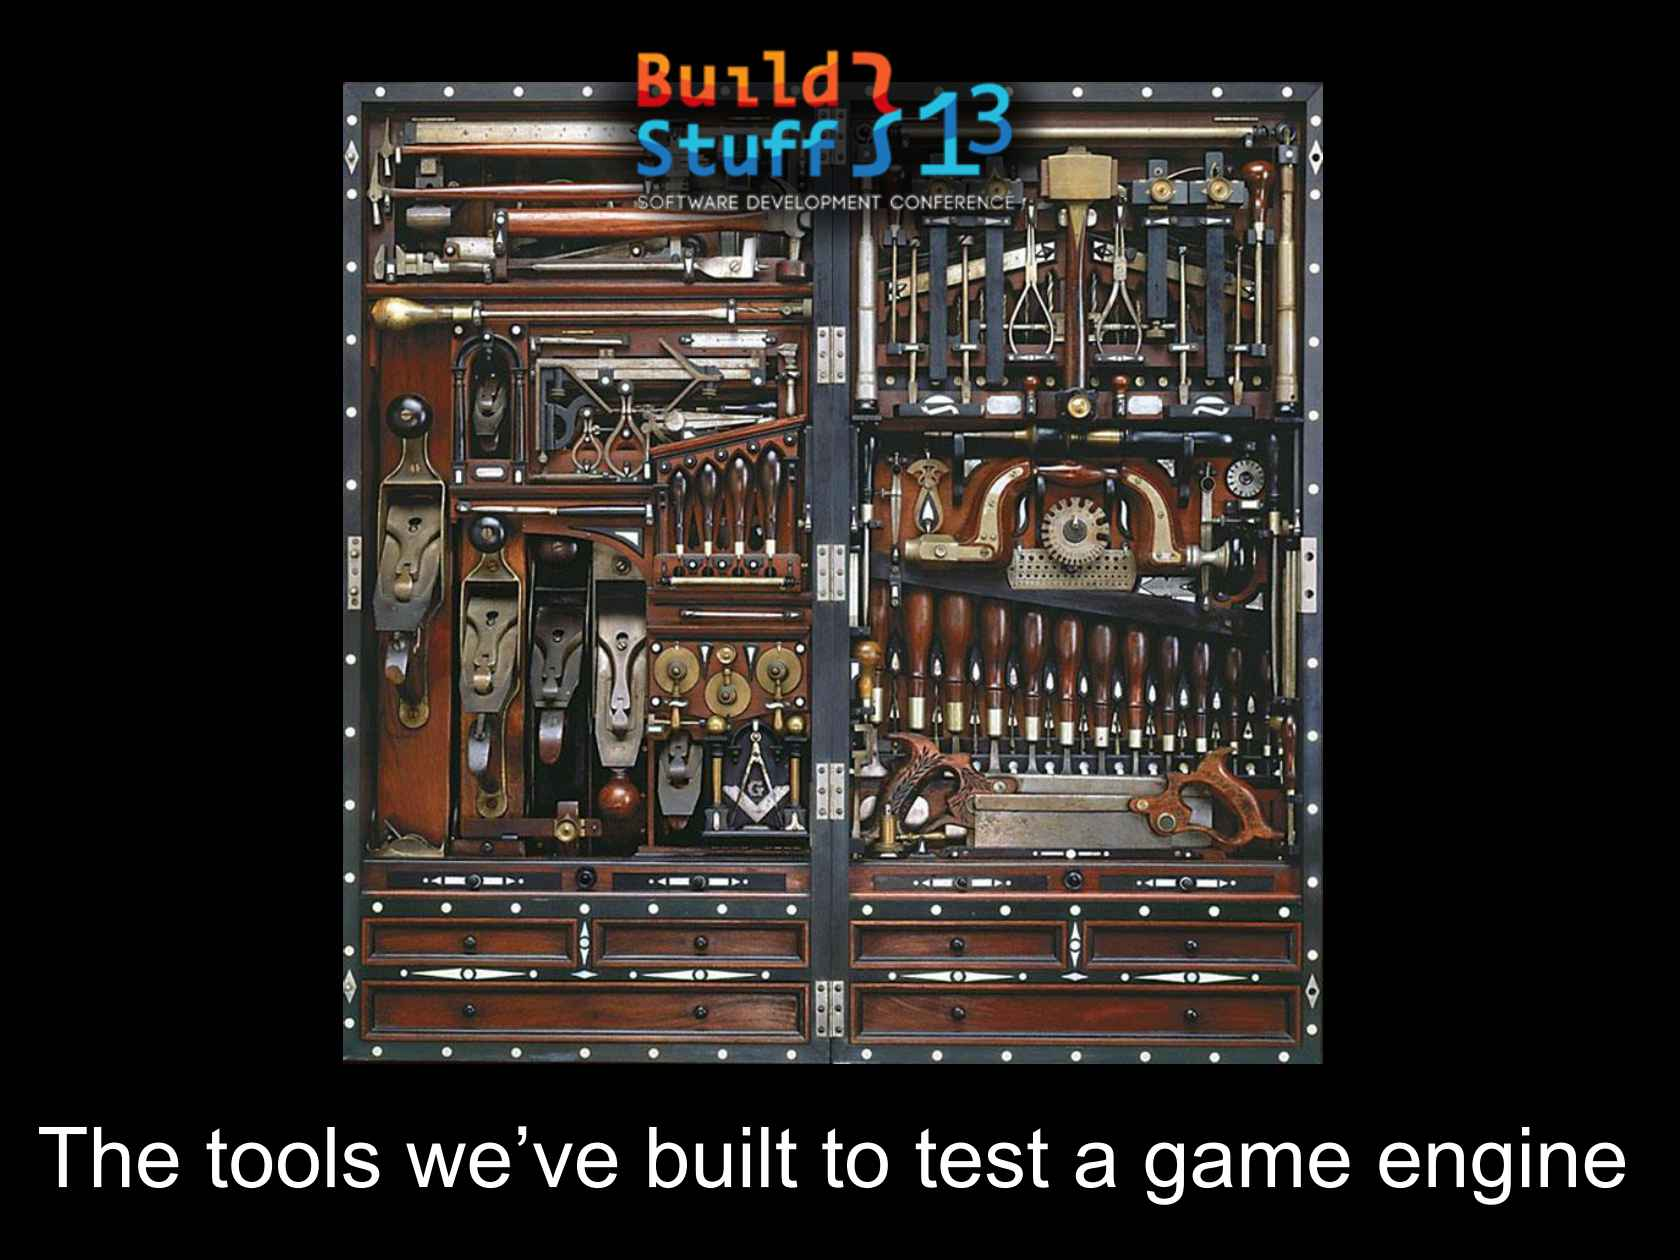 The Tools We've Built to Test a Game Engine